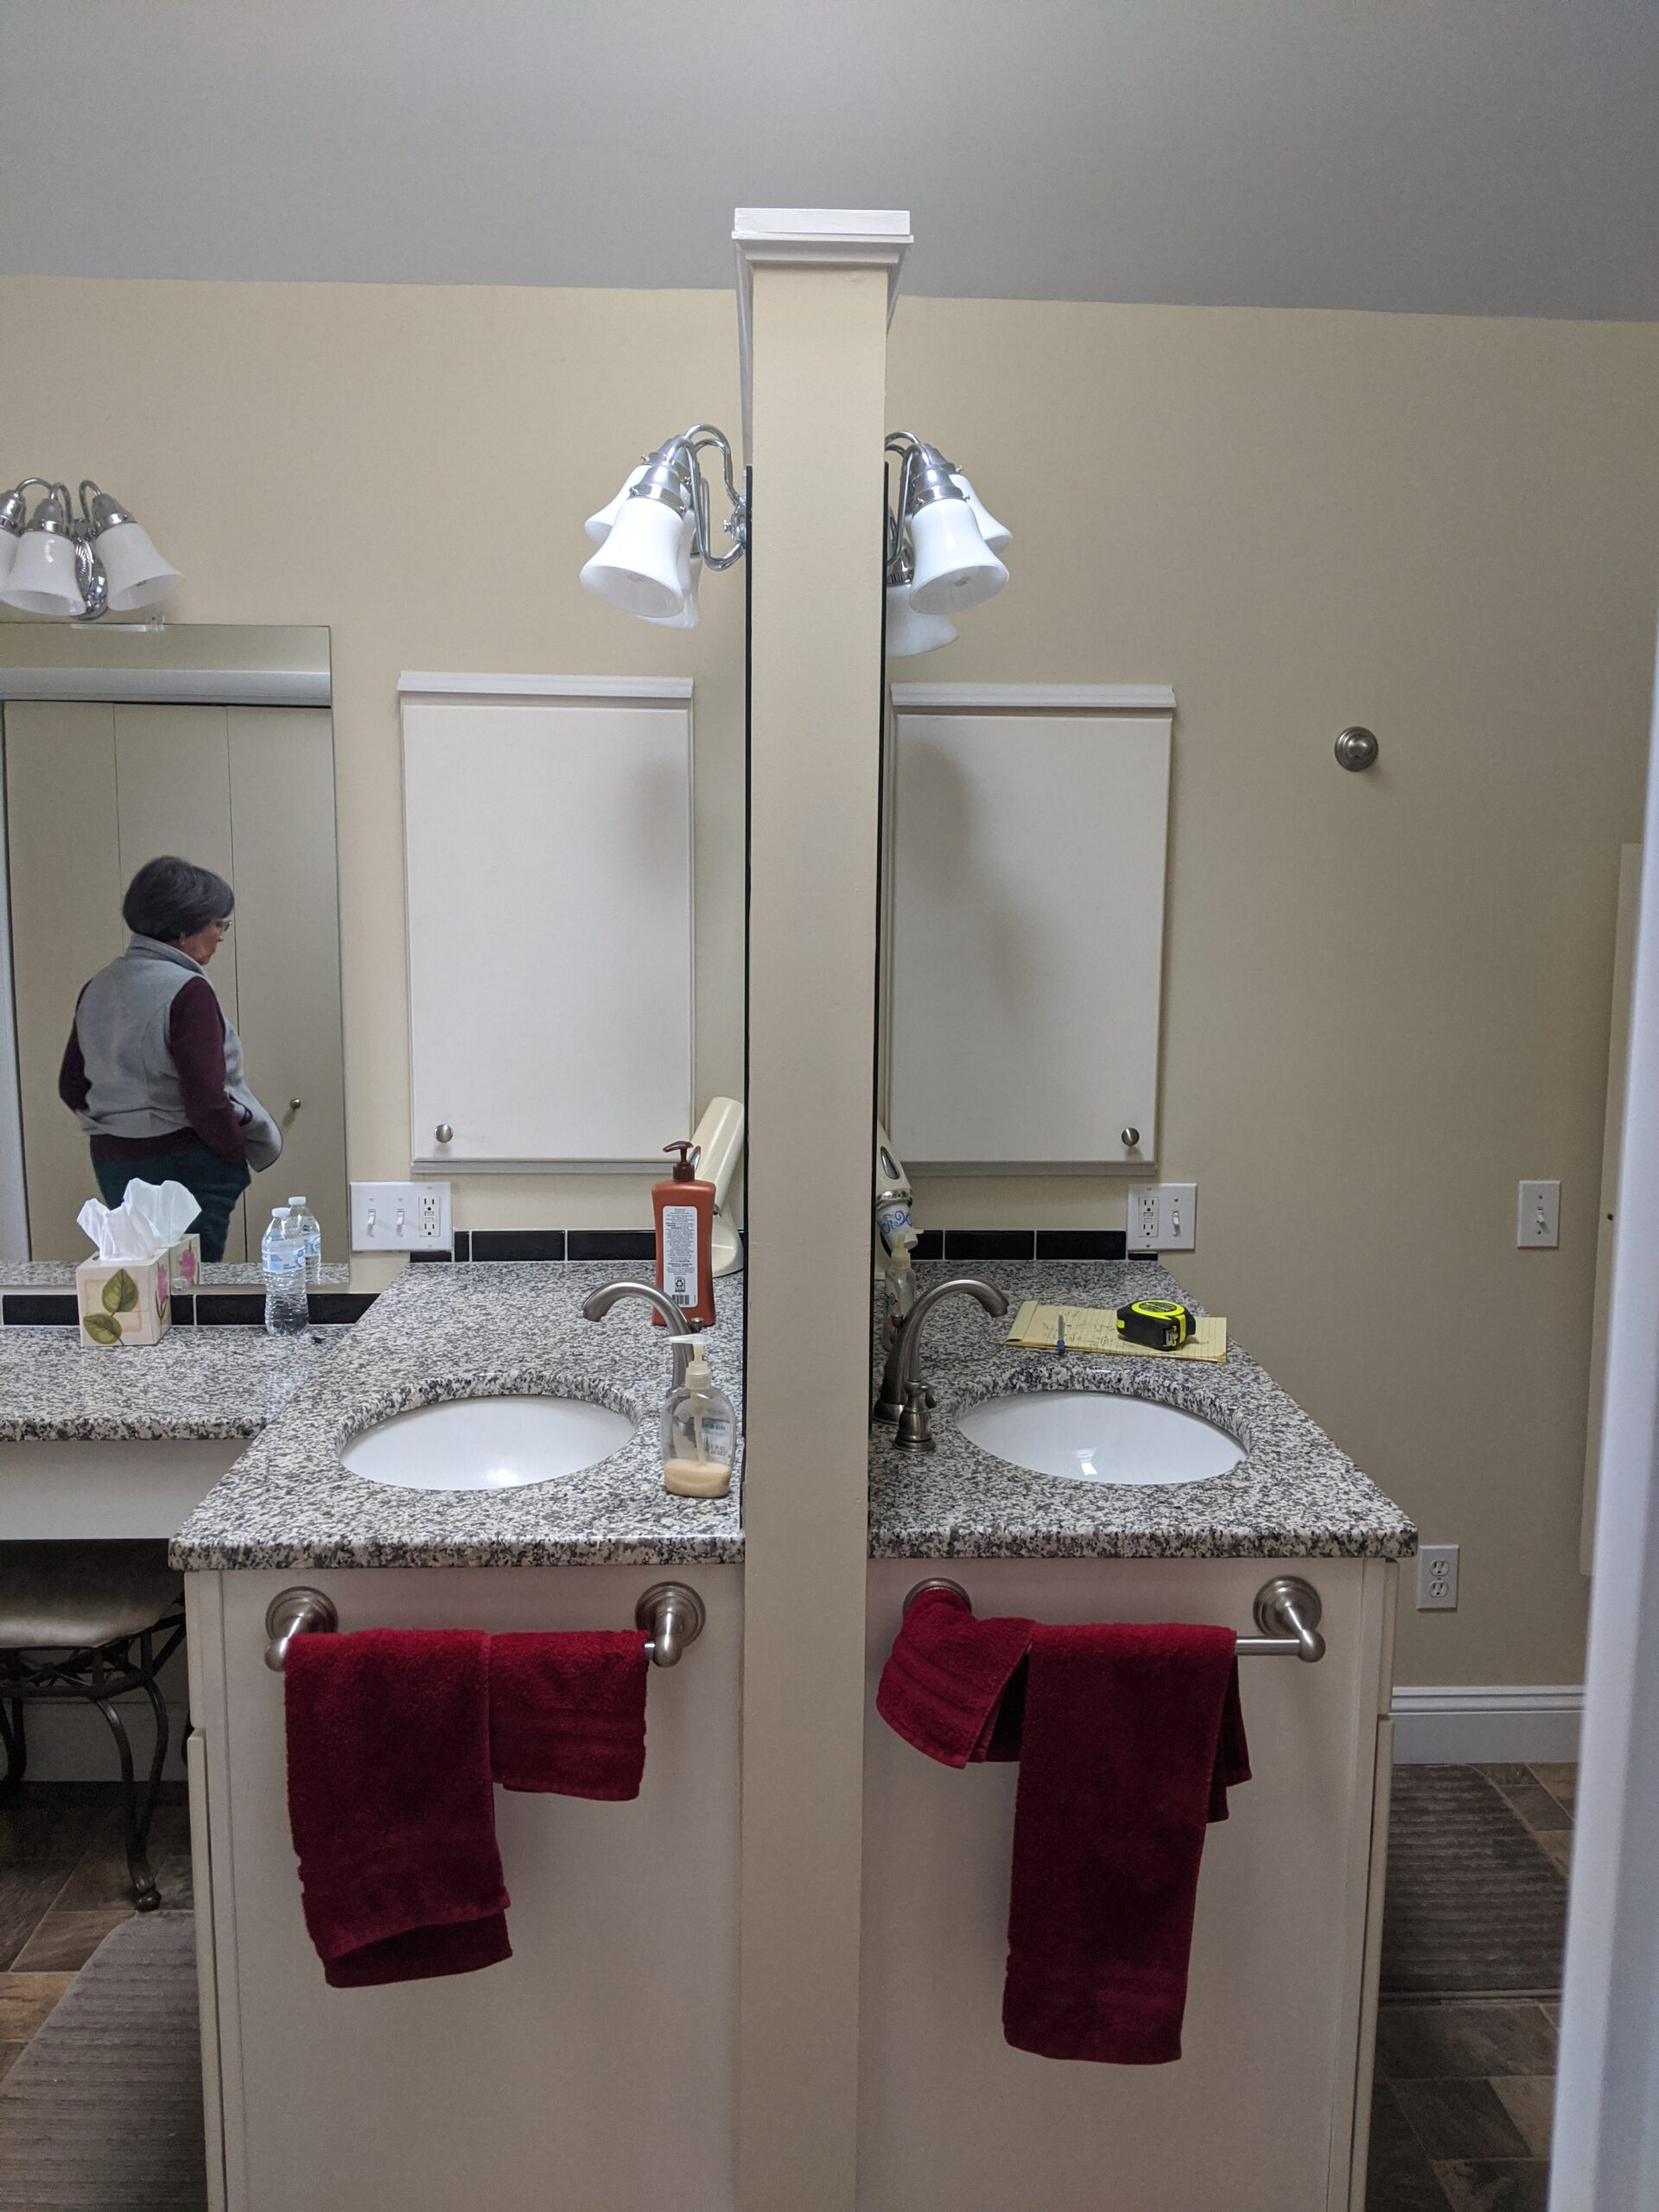 This picture is showing the vanities back to back in the middle of the room, it blocked the flow of traffic in the bathroom